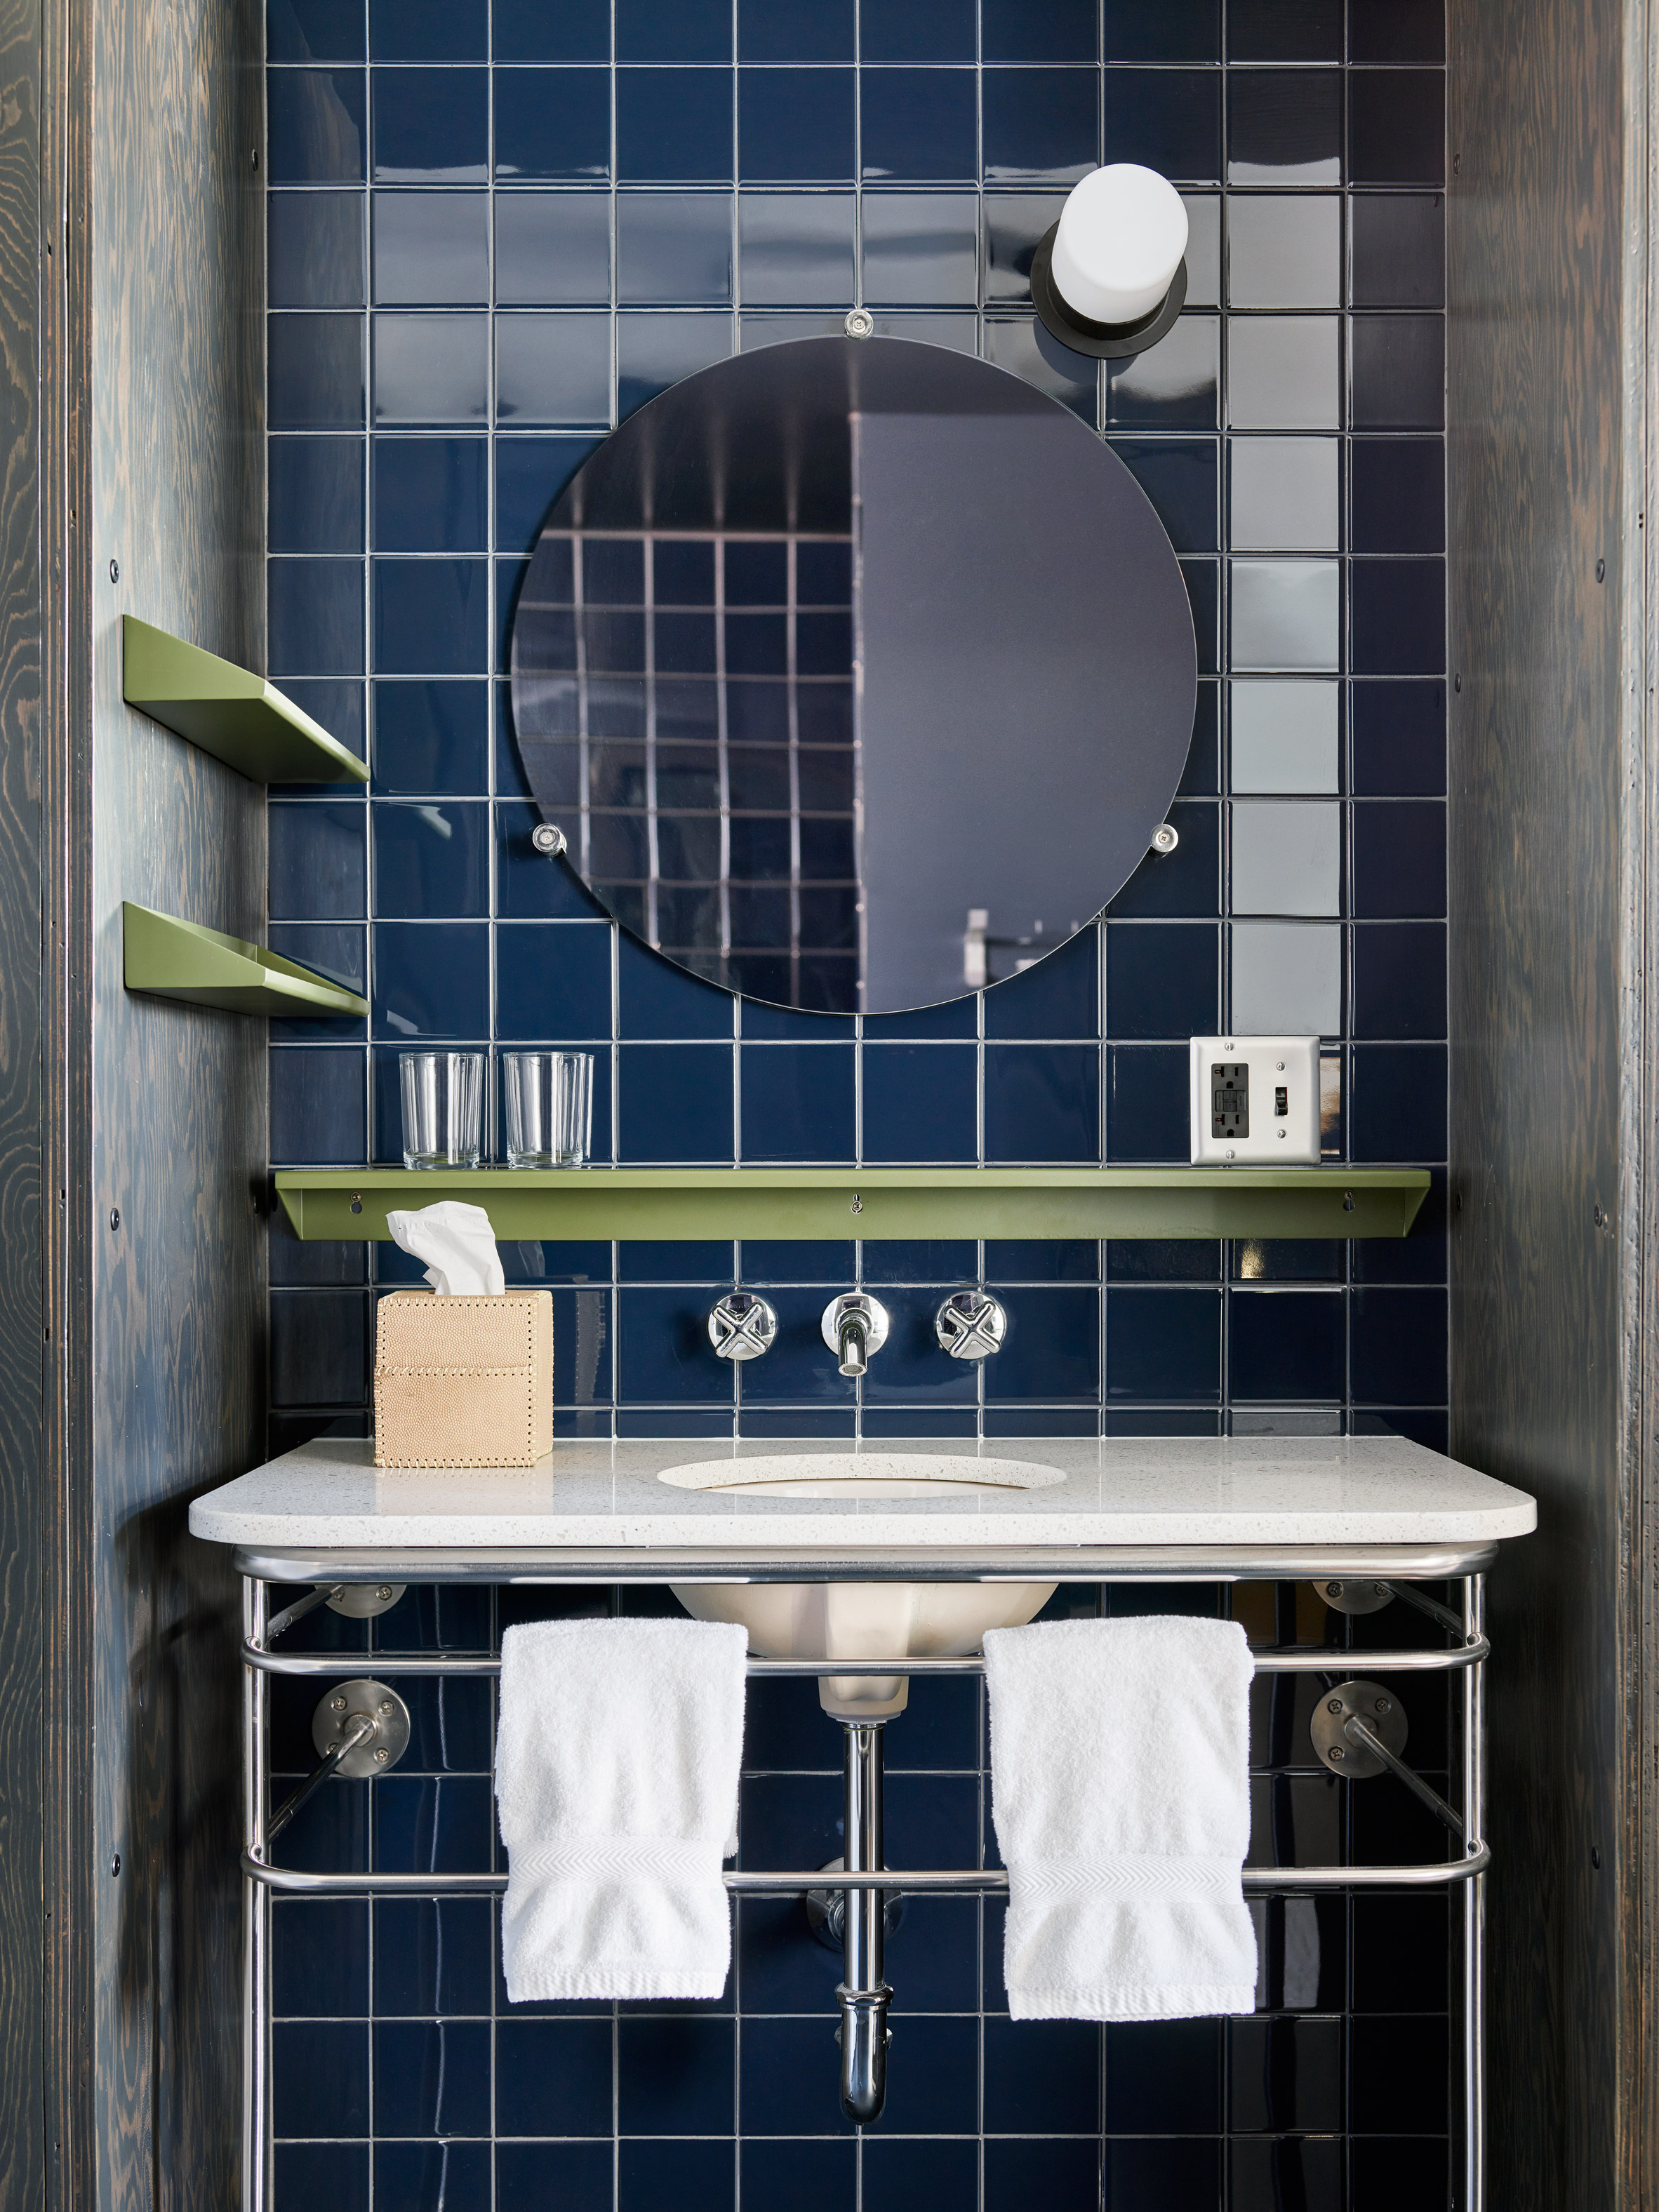 Ace hotel chicago features colourful mid century style for Ace hotel chicago design